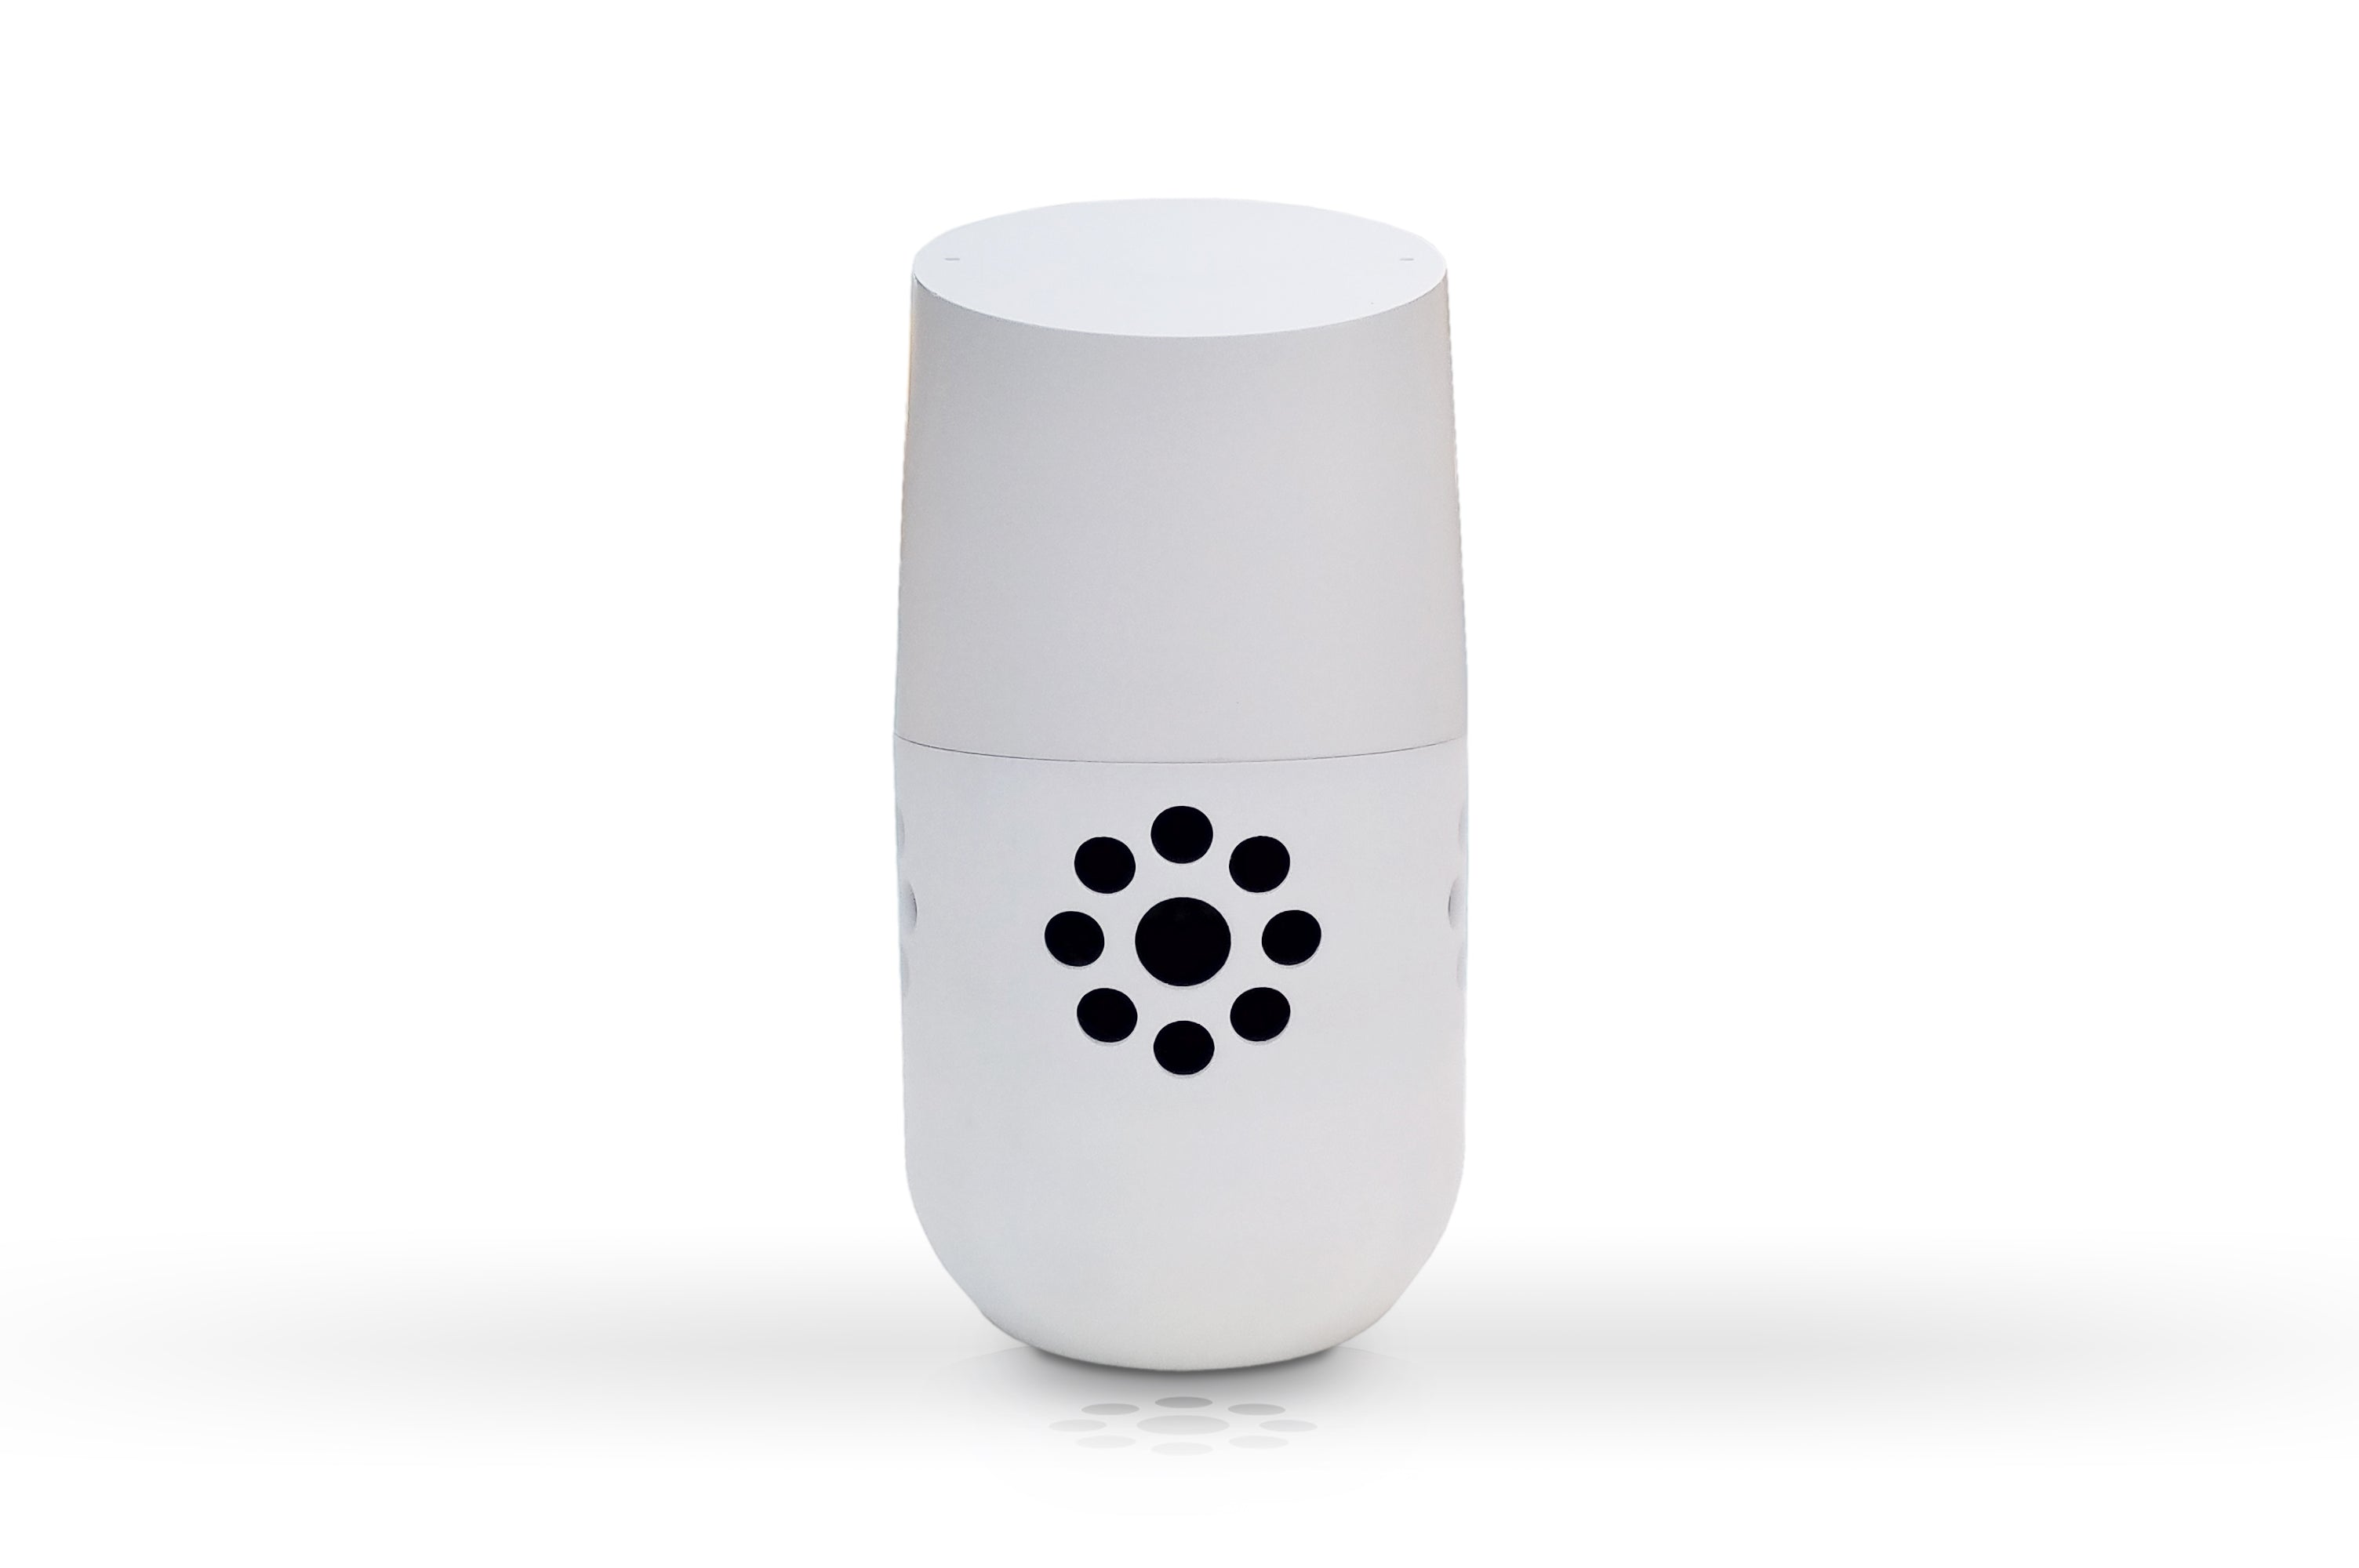 BatteryBoot™ for Google Home - White<br>for over 24 hours of battery life!